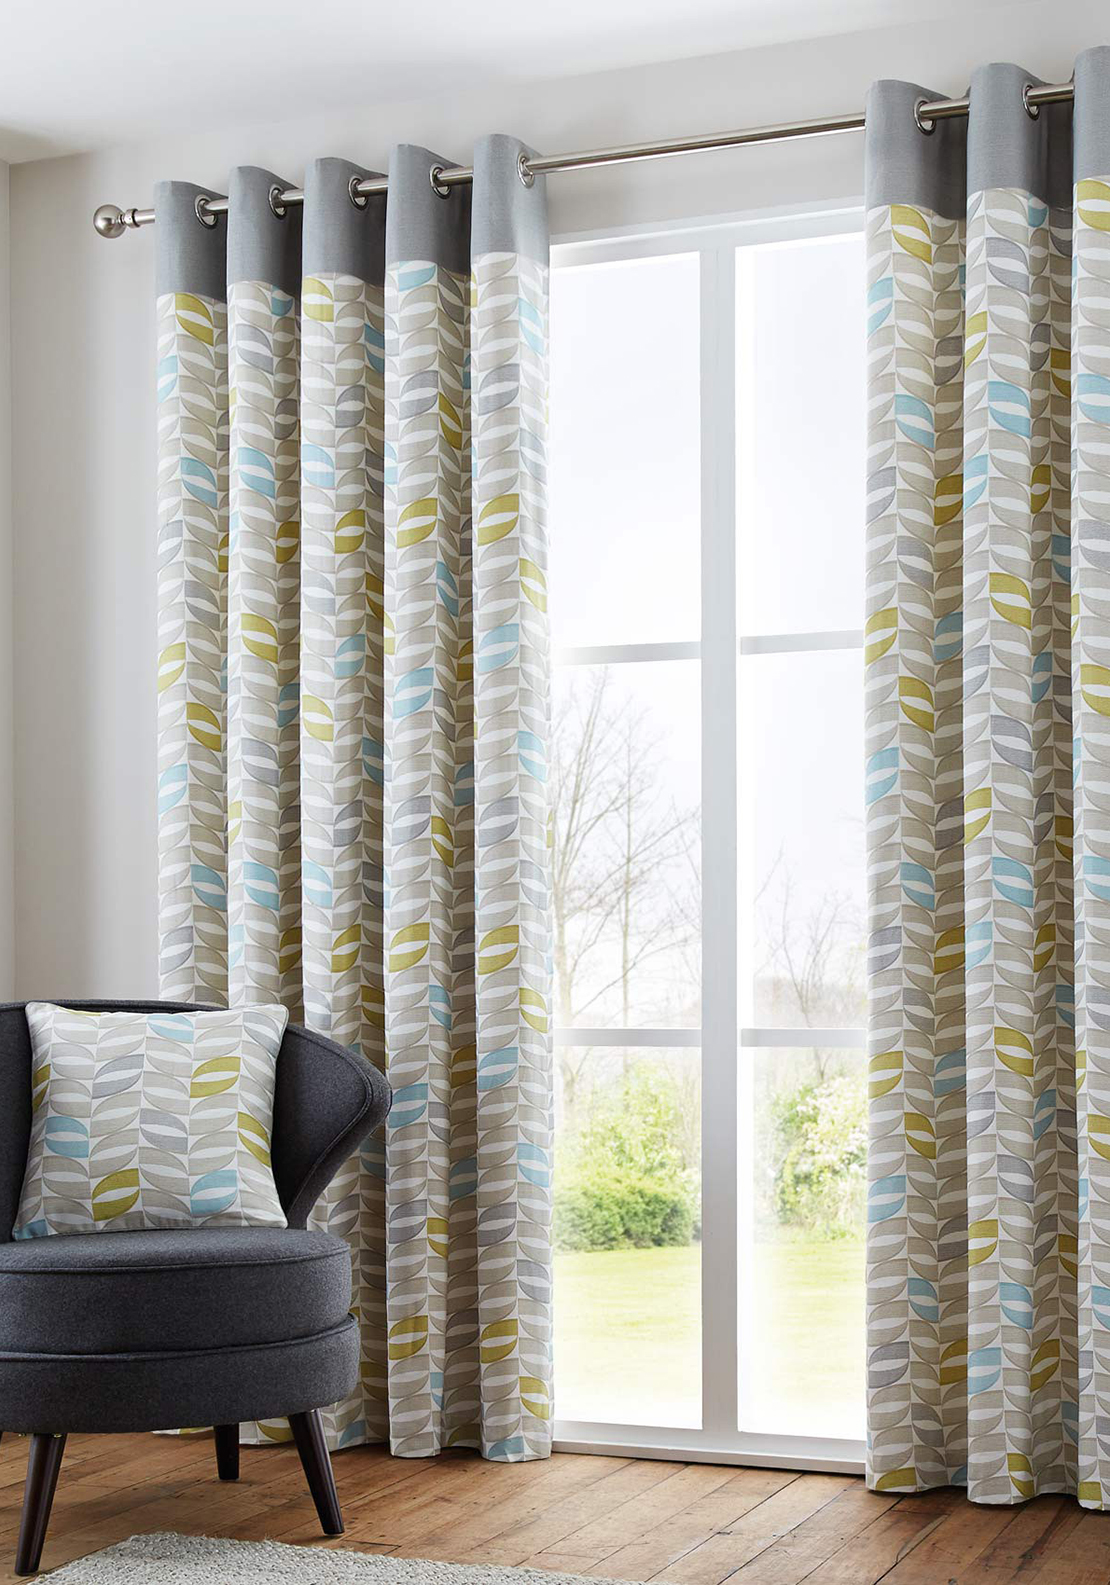 Fusion Home Furnishings Copeland Printed Fully Lined Eyelet Curtains, Duckegg